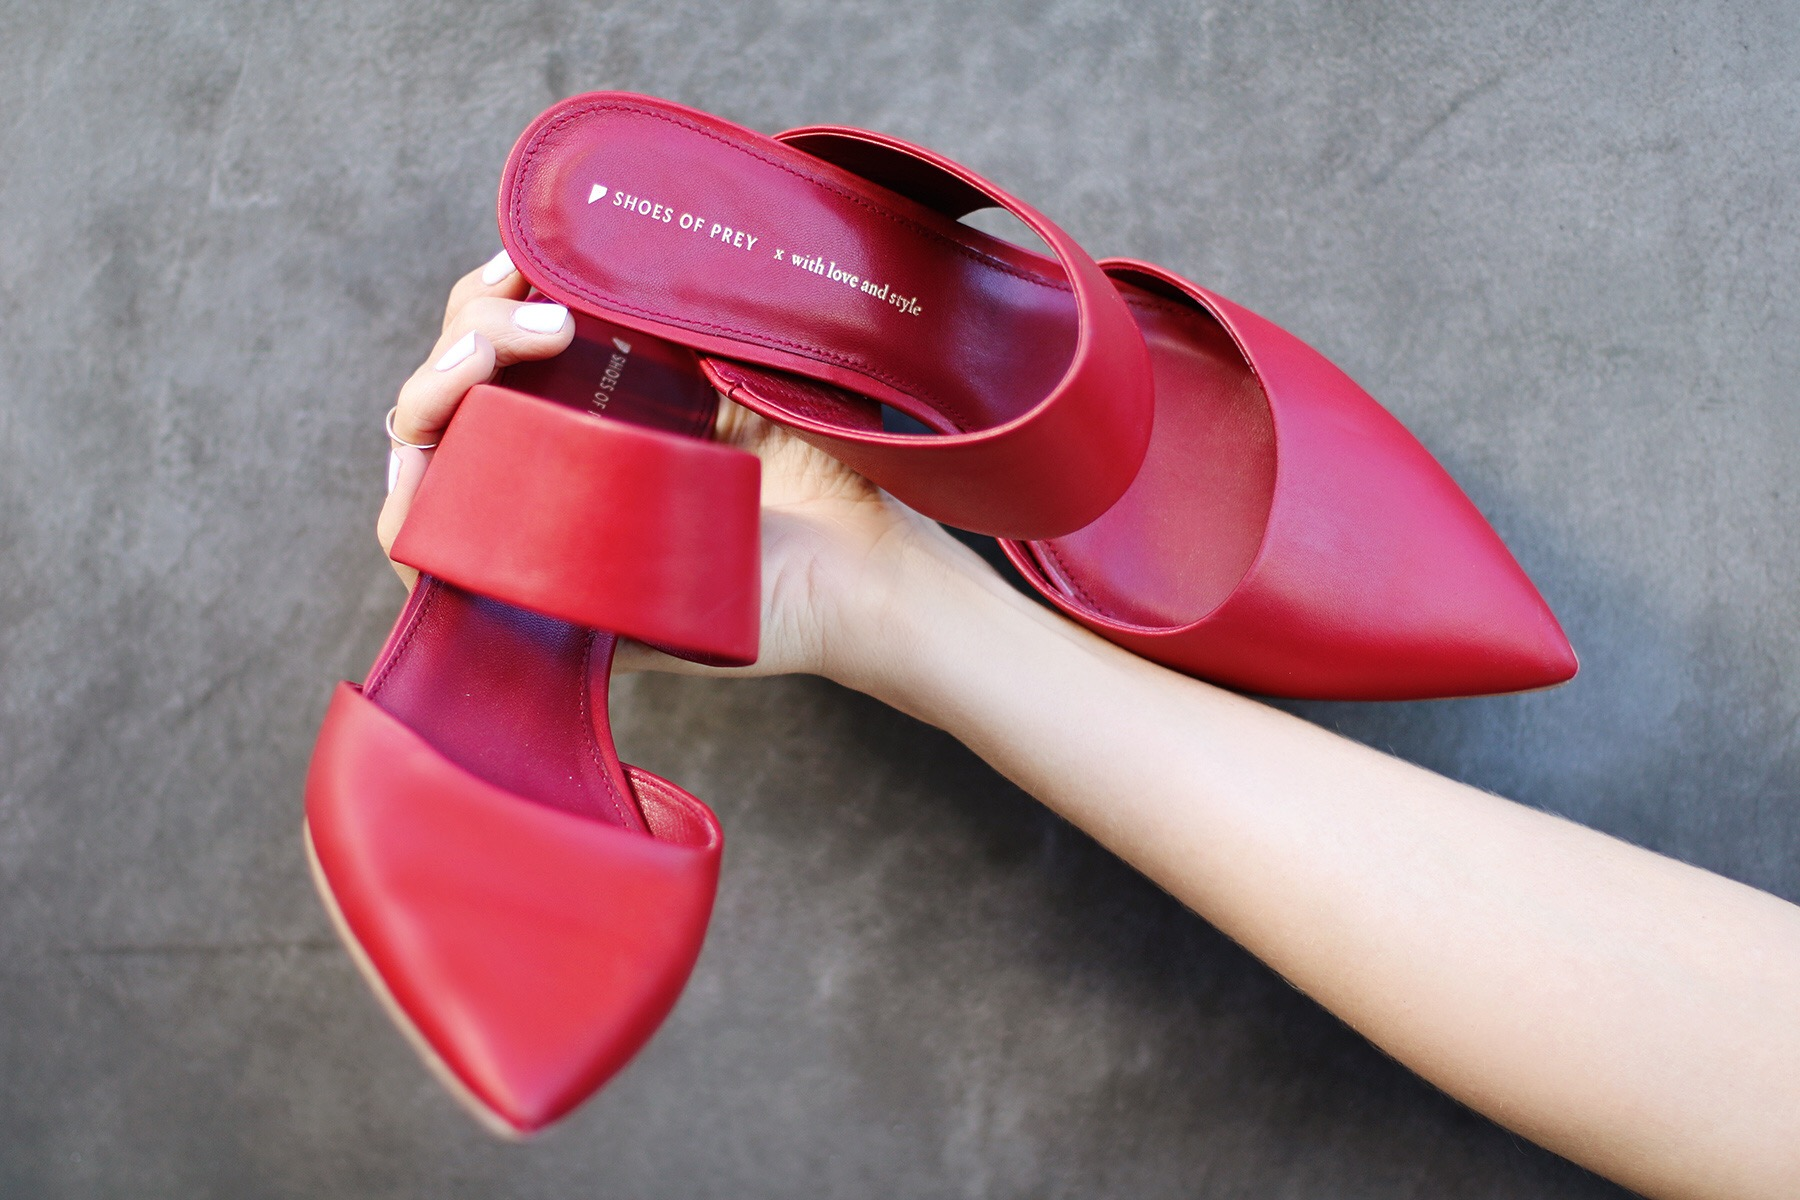 red-mule-heel-shoes-of-prey-with-love-and-style-custom-shoes.jpg